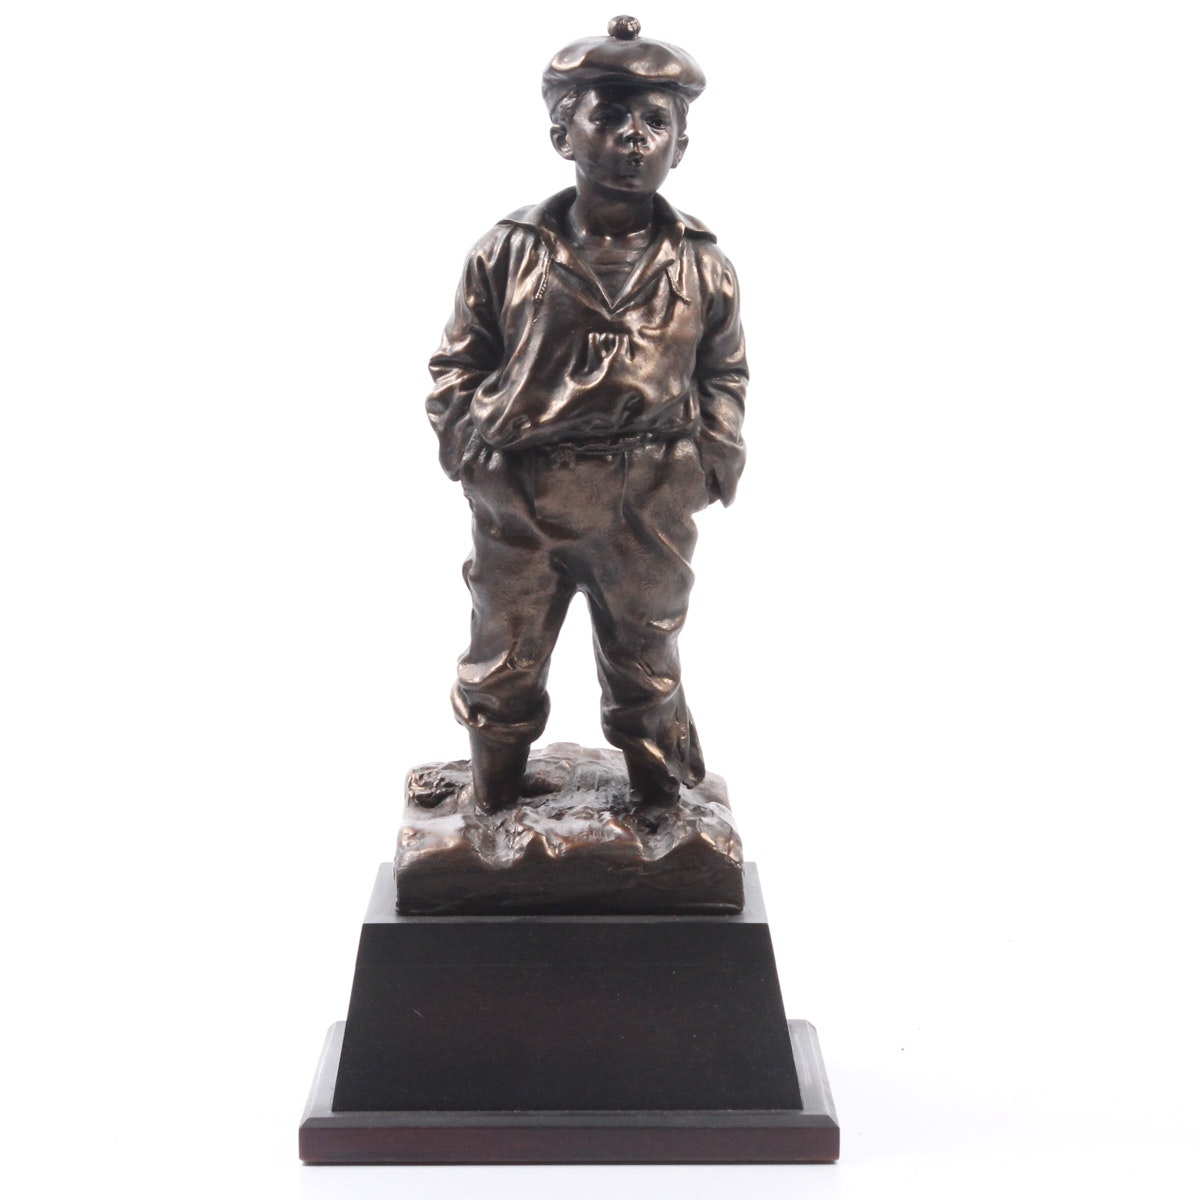 Reproduction Whistling Boy Metal Statue